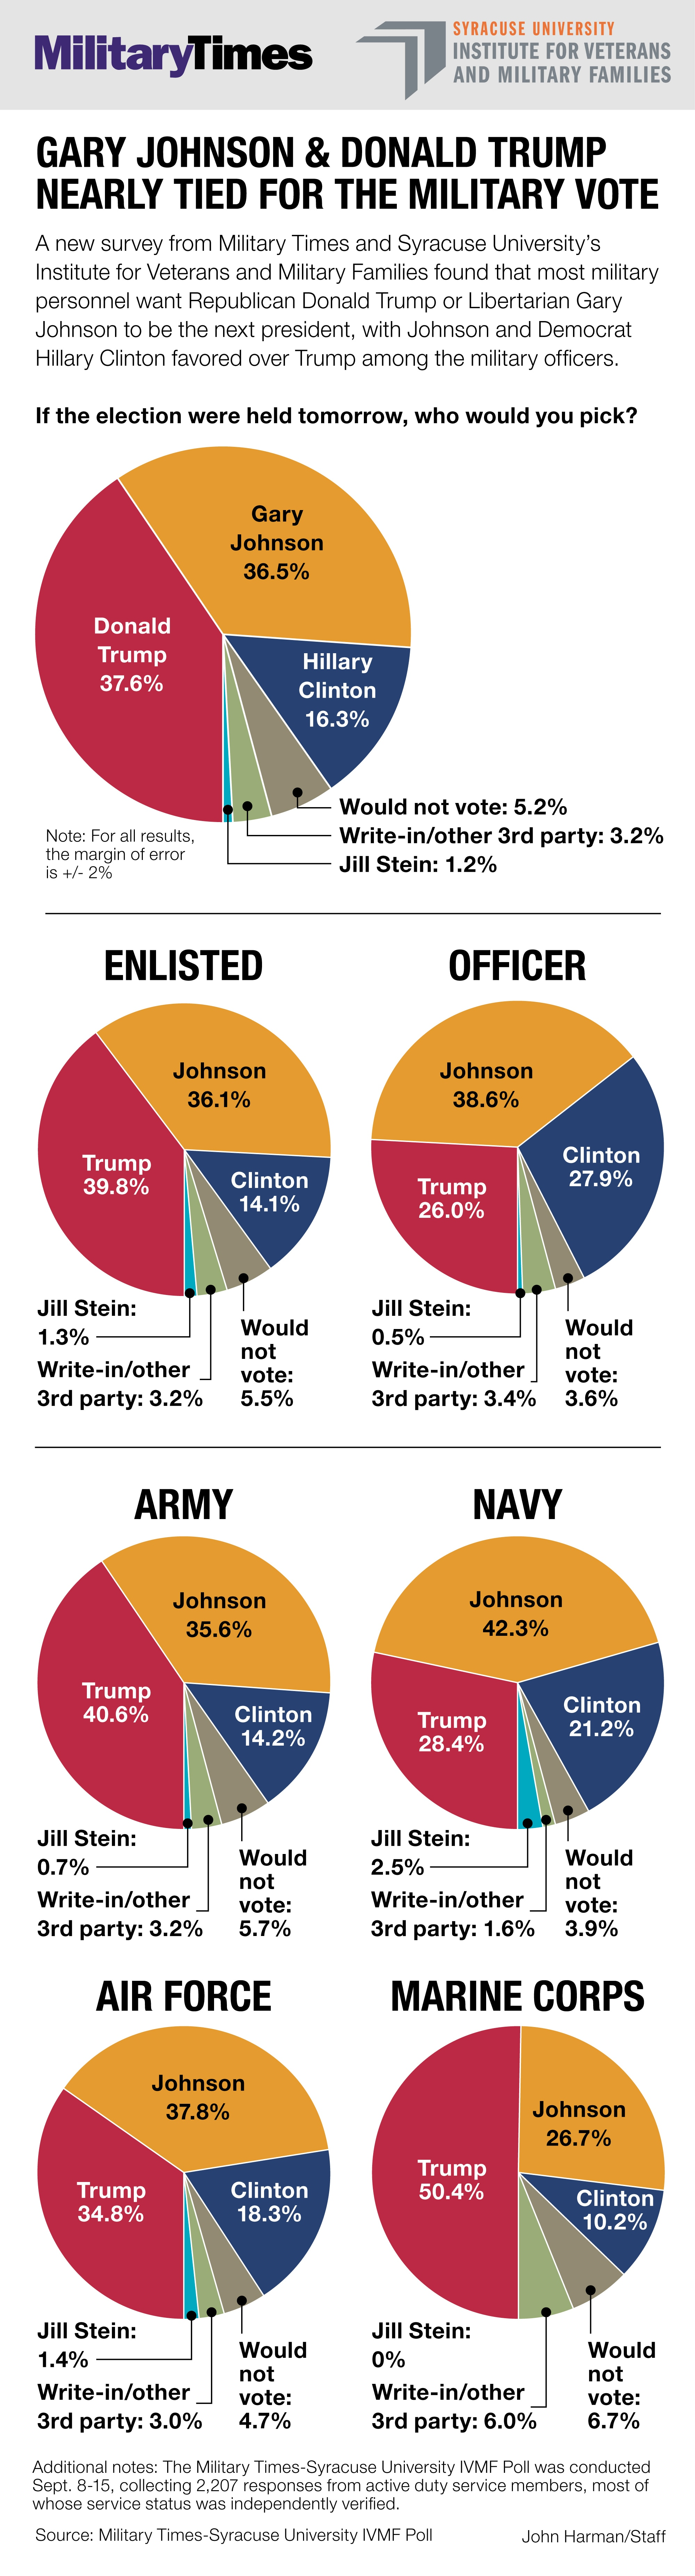 Military Times-IVMF poll September 2016